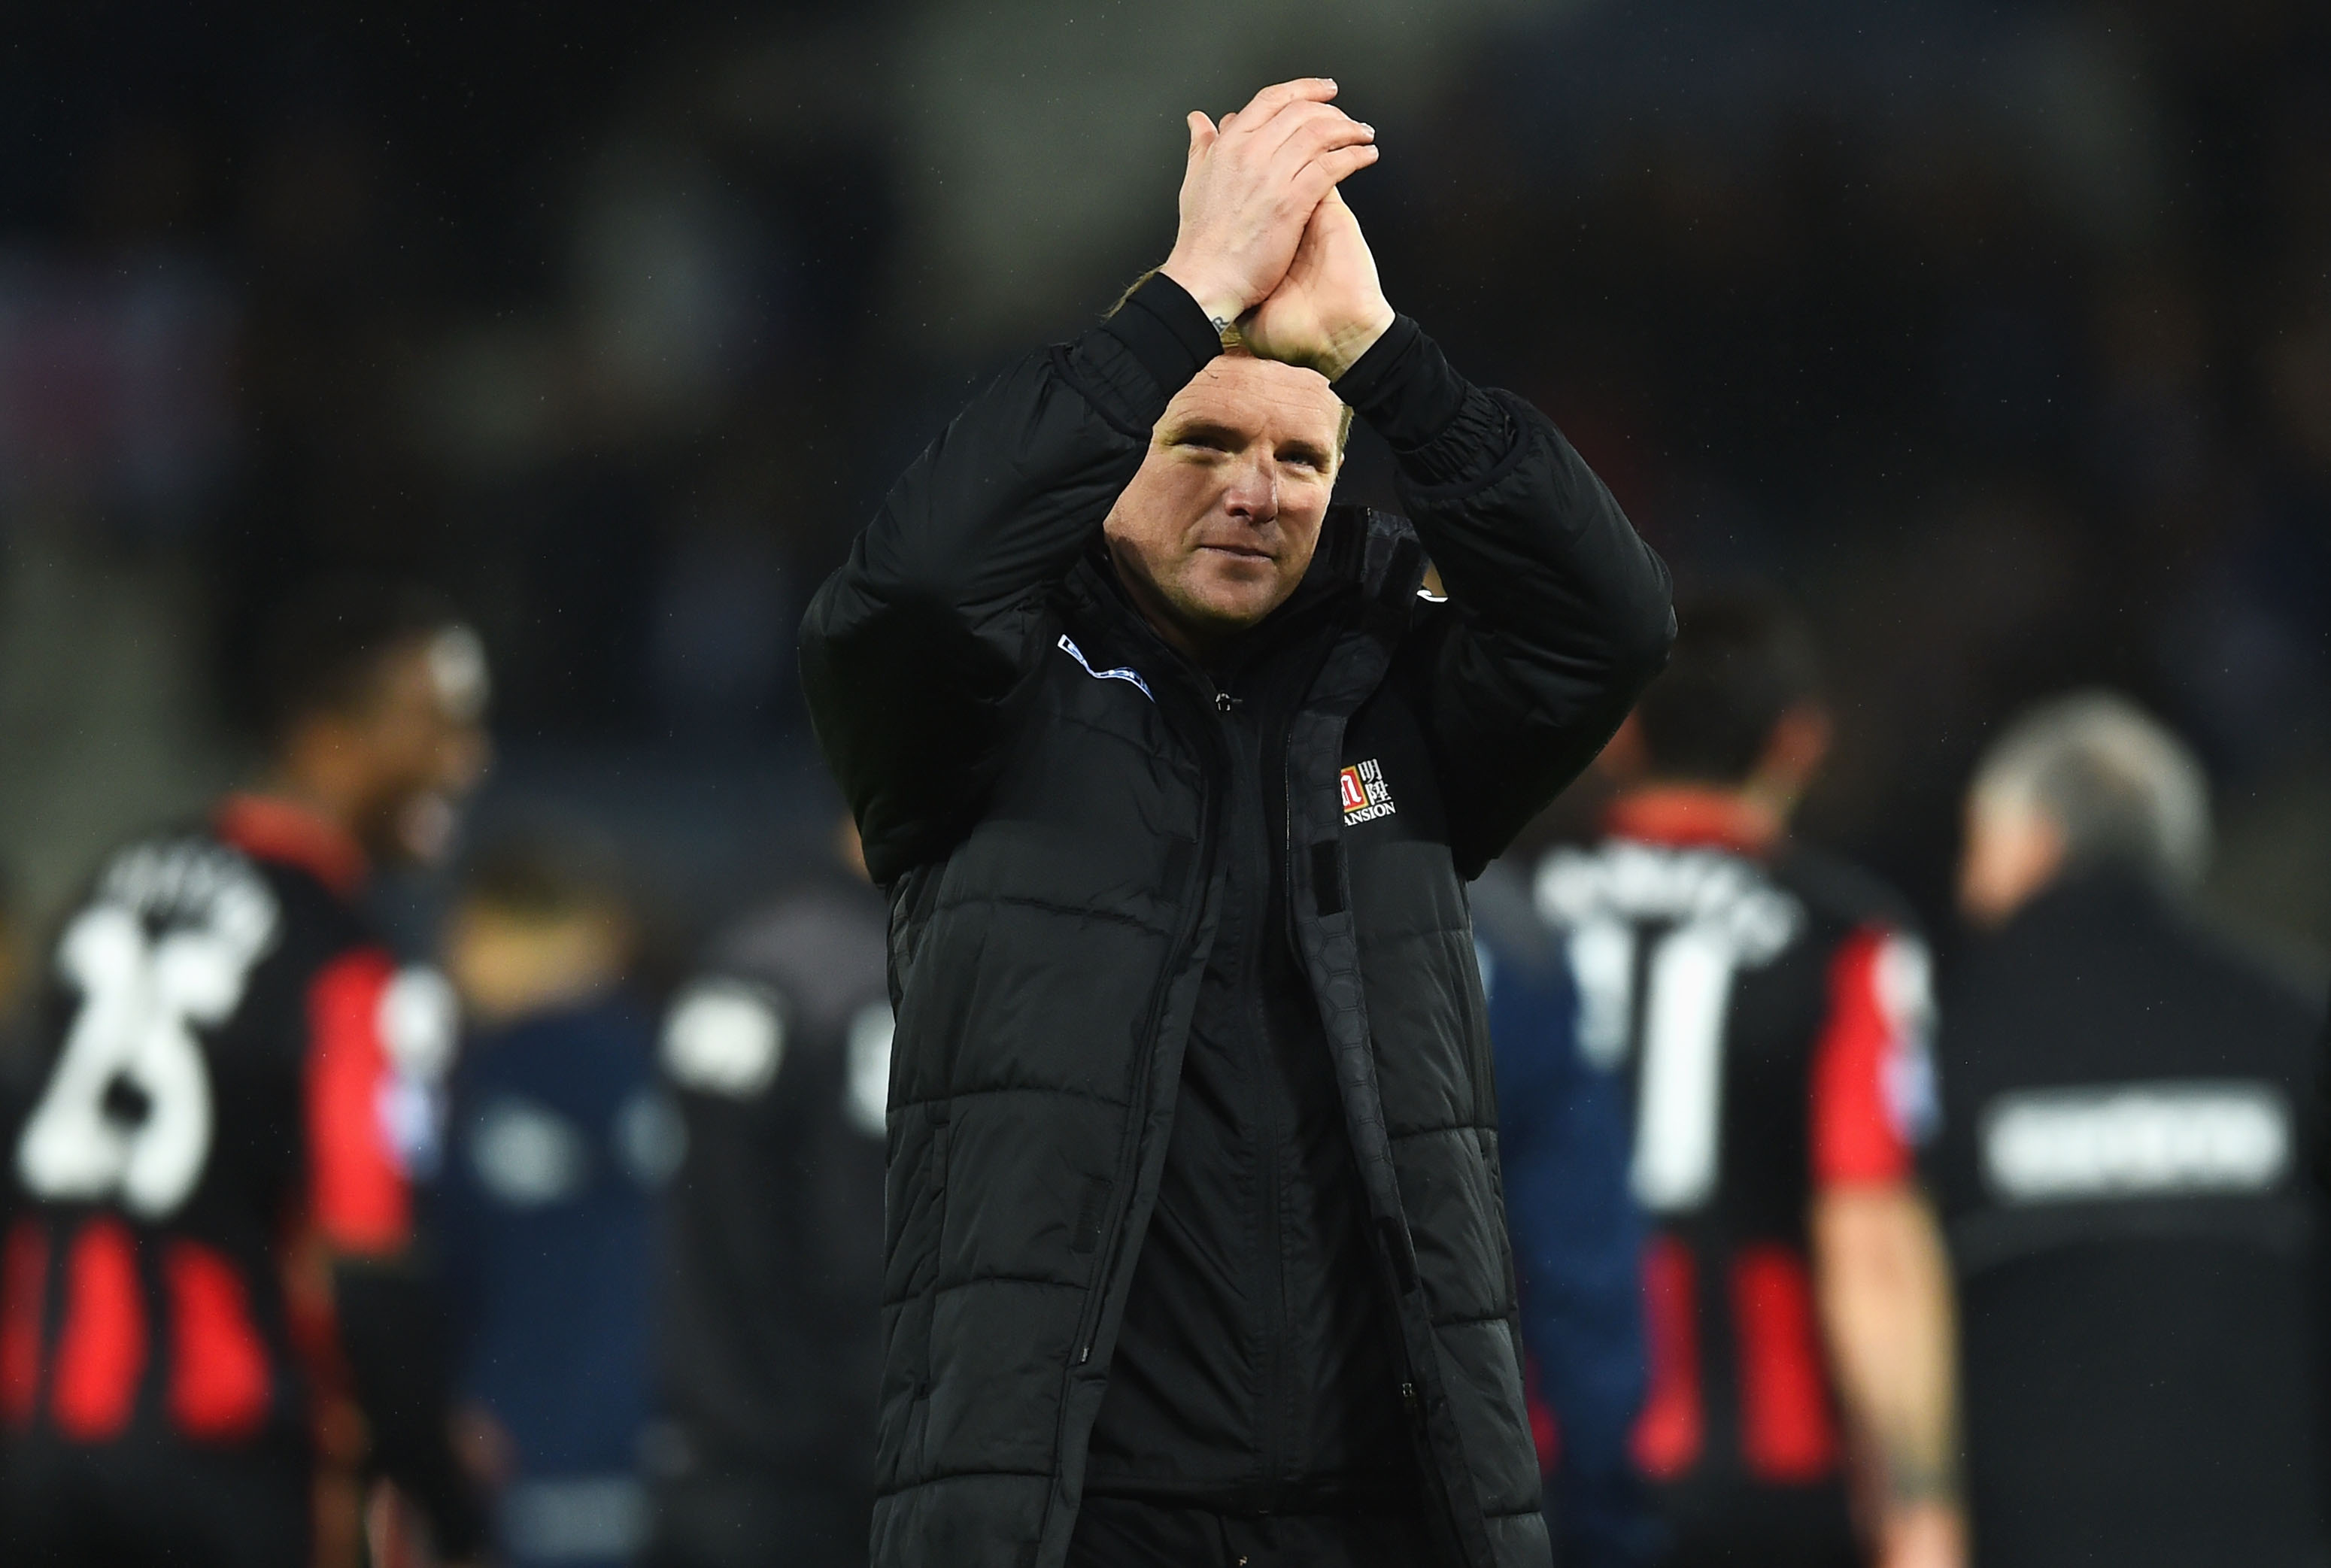 LEICESTER, ENGLAND - JANUARY 02: Eddie Howe Manager of Bournemouth applauds the supporters after the 0-0 draw in the Barclays Premier League match between Leicester City and Bournemouth at The King Power Stadium on January 2, 2016 in Leicester, England. (Photo by Laurence Griffiths/Getty Images)